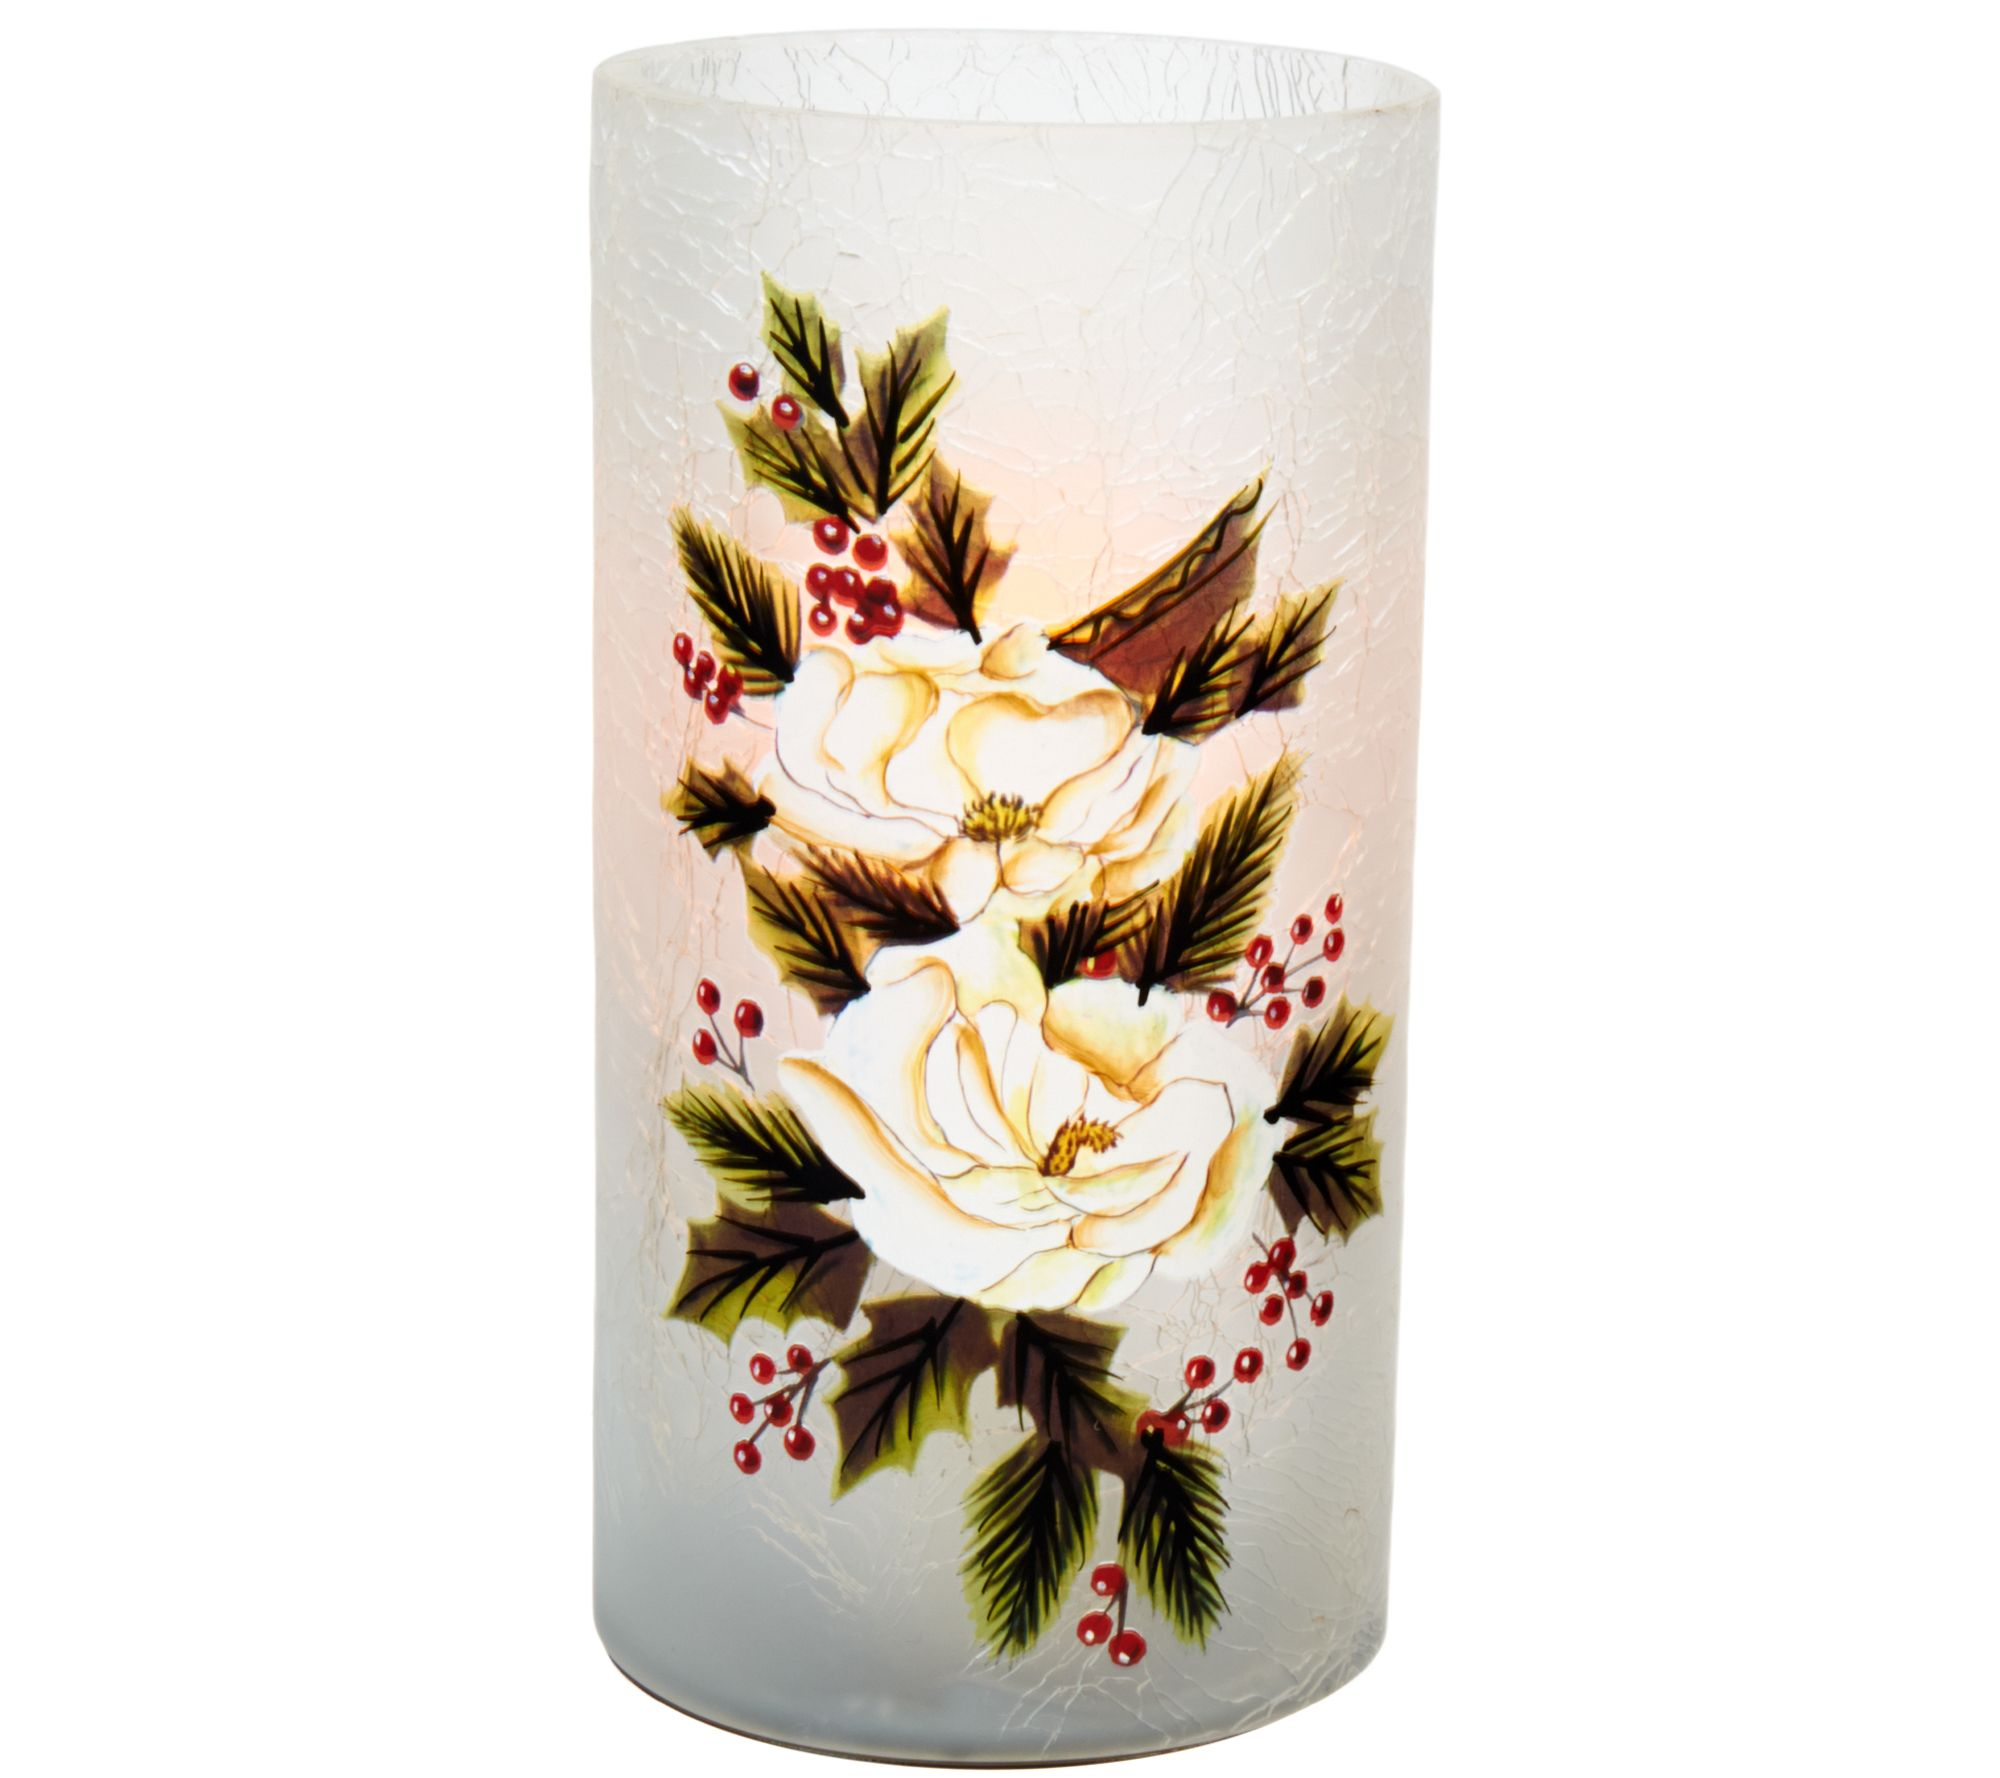 "Candle Impressions 7"" Hand Painted Holiday Luminary Vase — QVC.com"